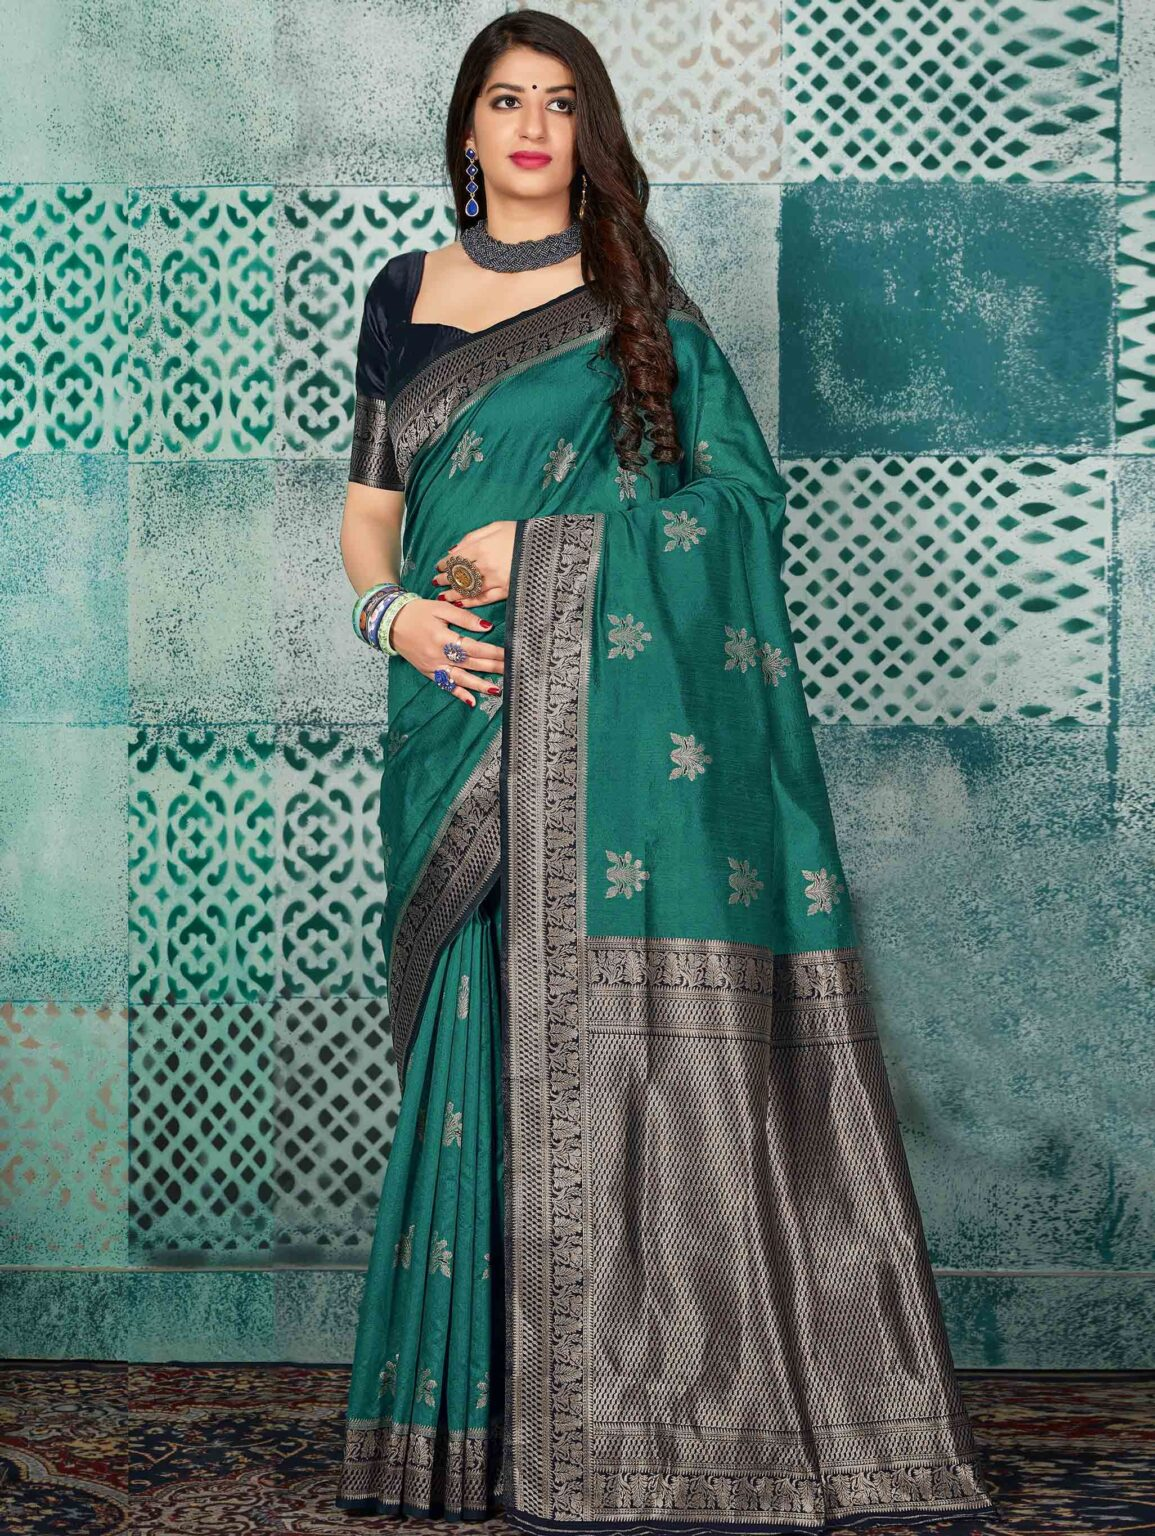 Bottle Green Banarasi Silk Saree with Woven Butta and Floral Border